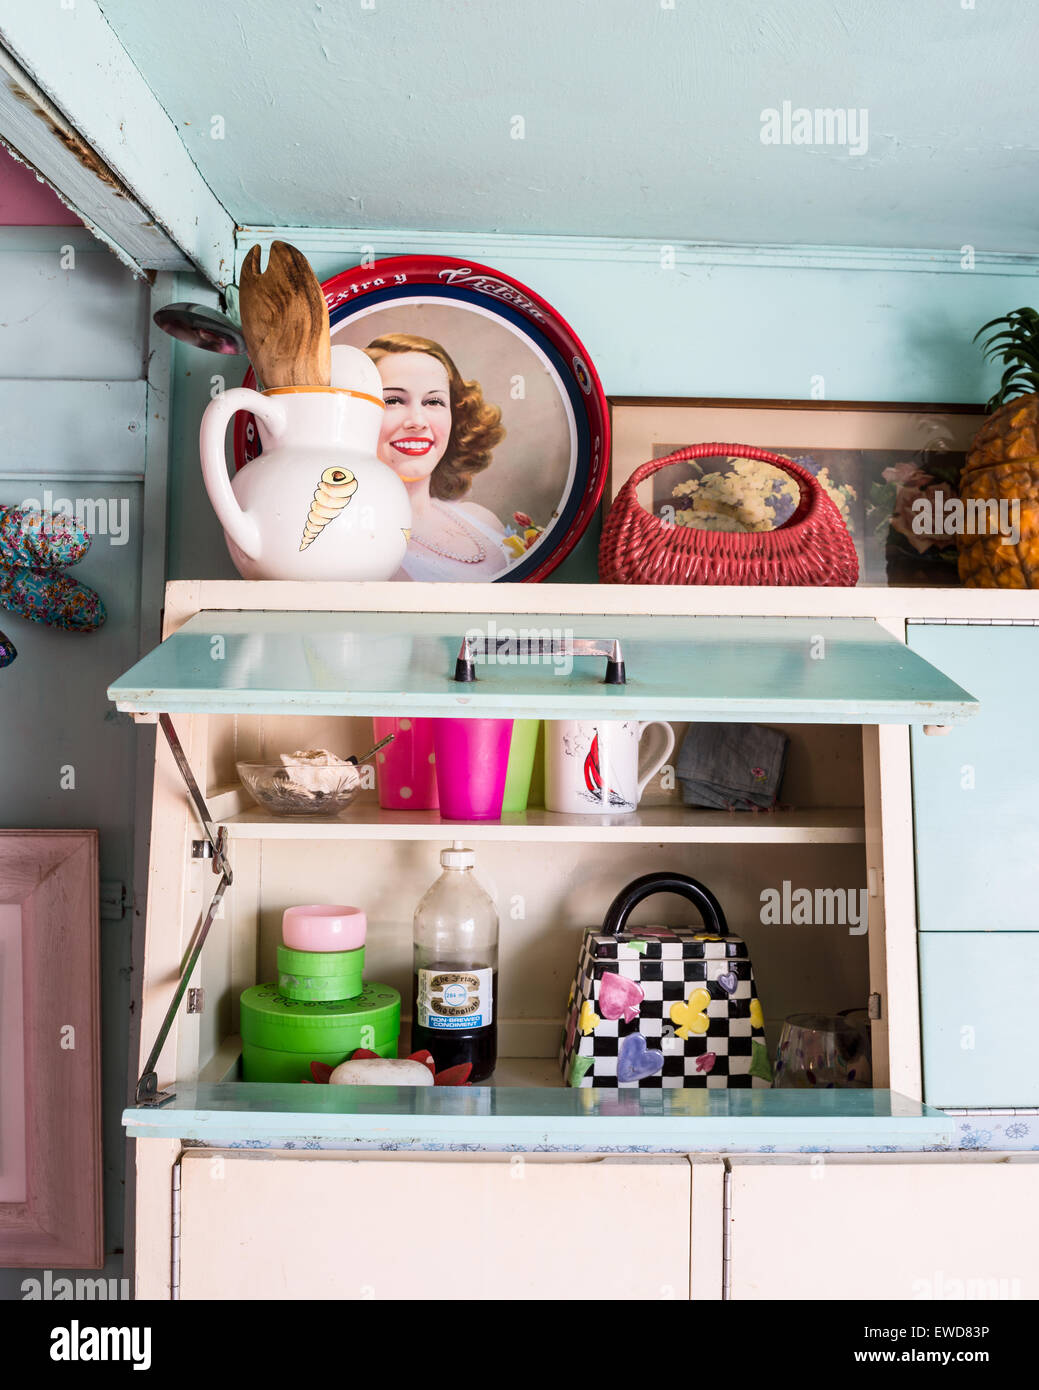 Selection of crockery in retro style cabinet - Stock Image